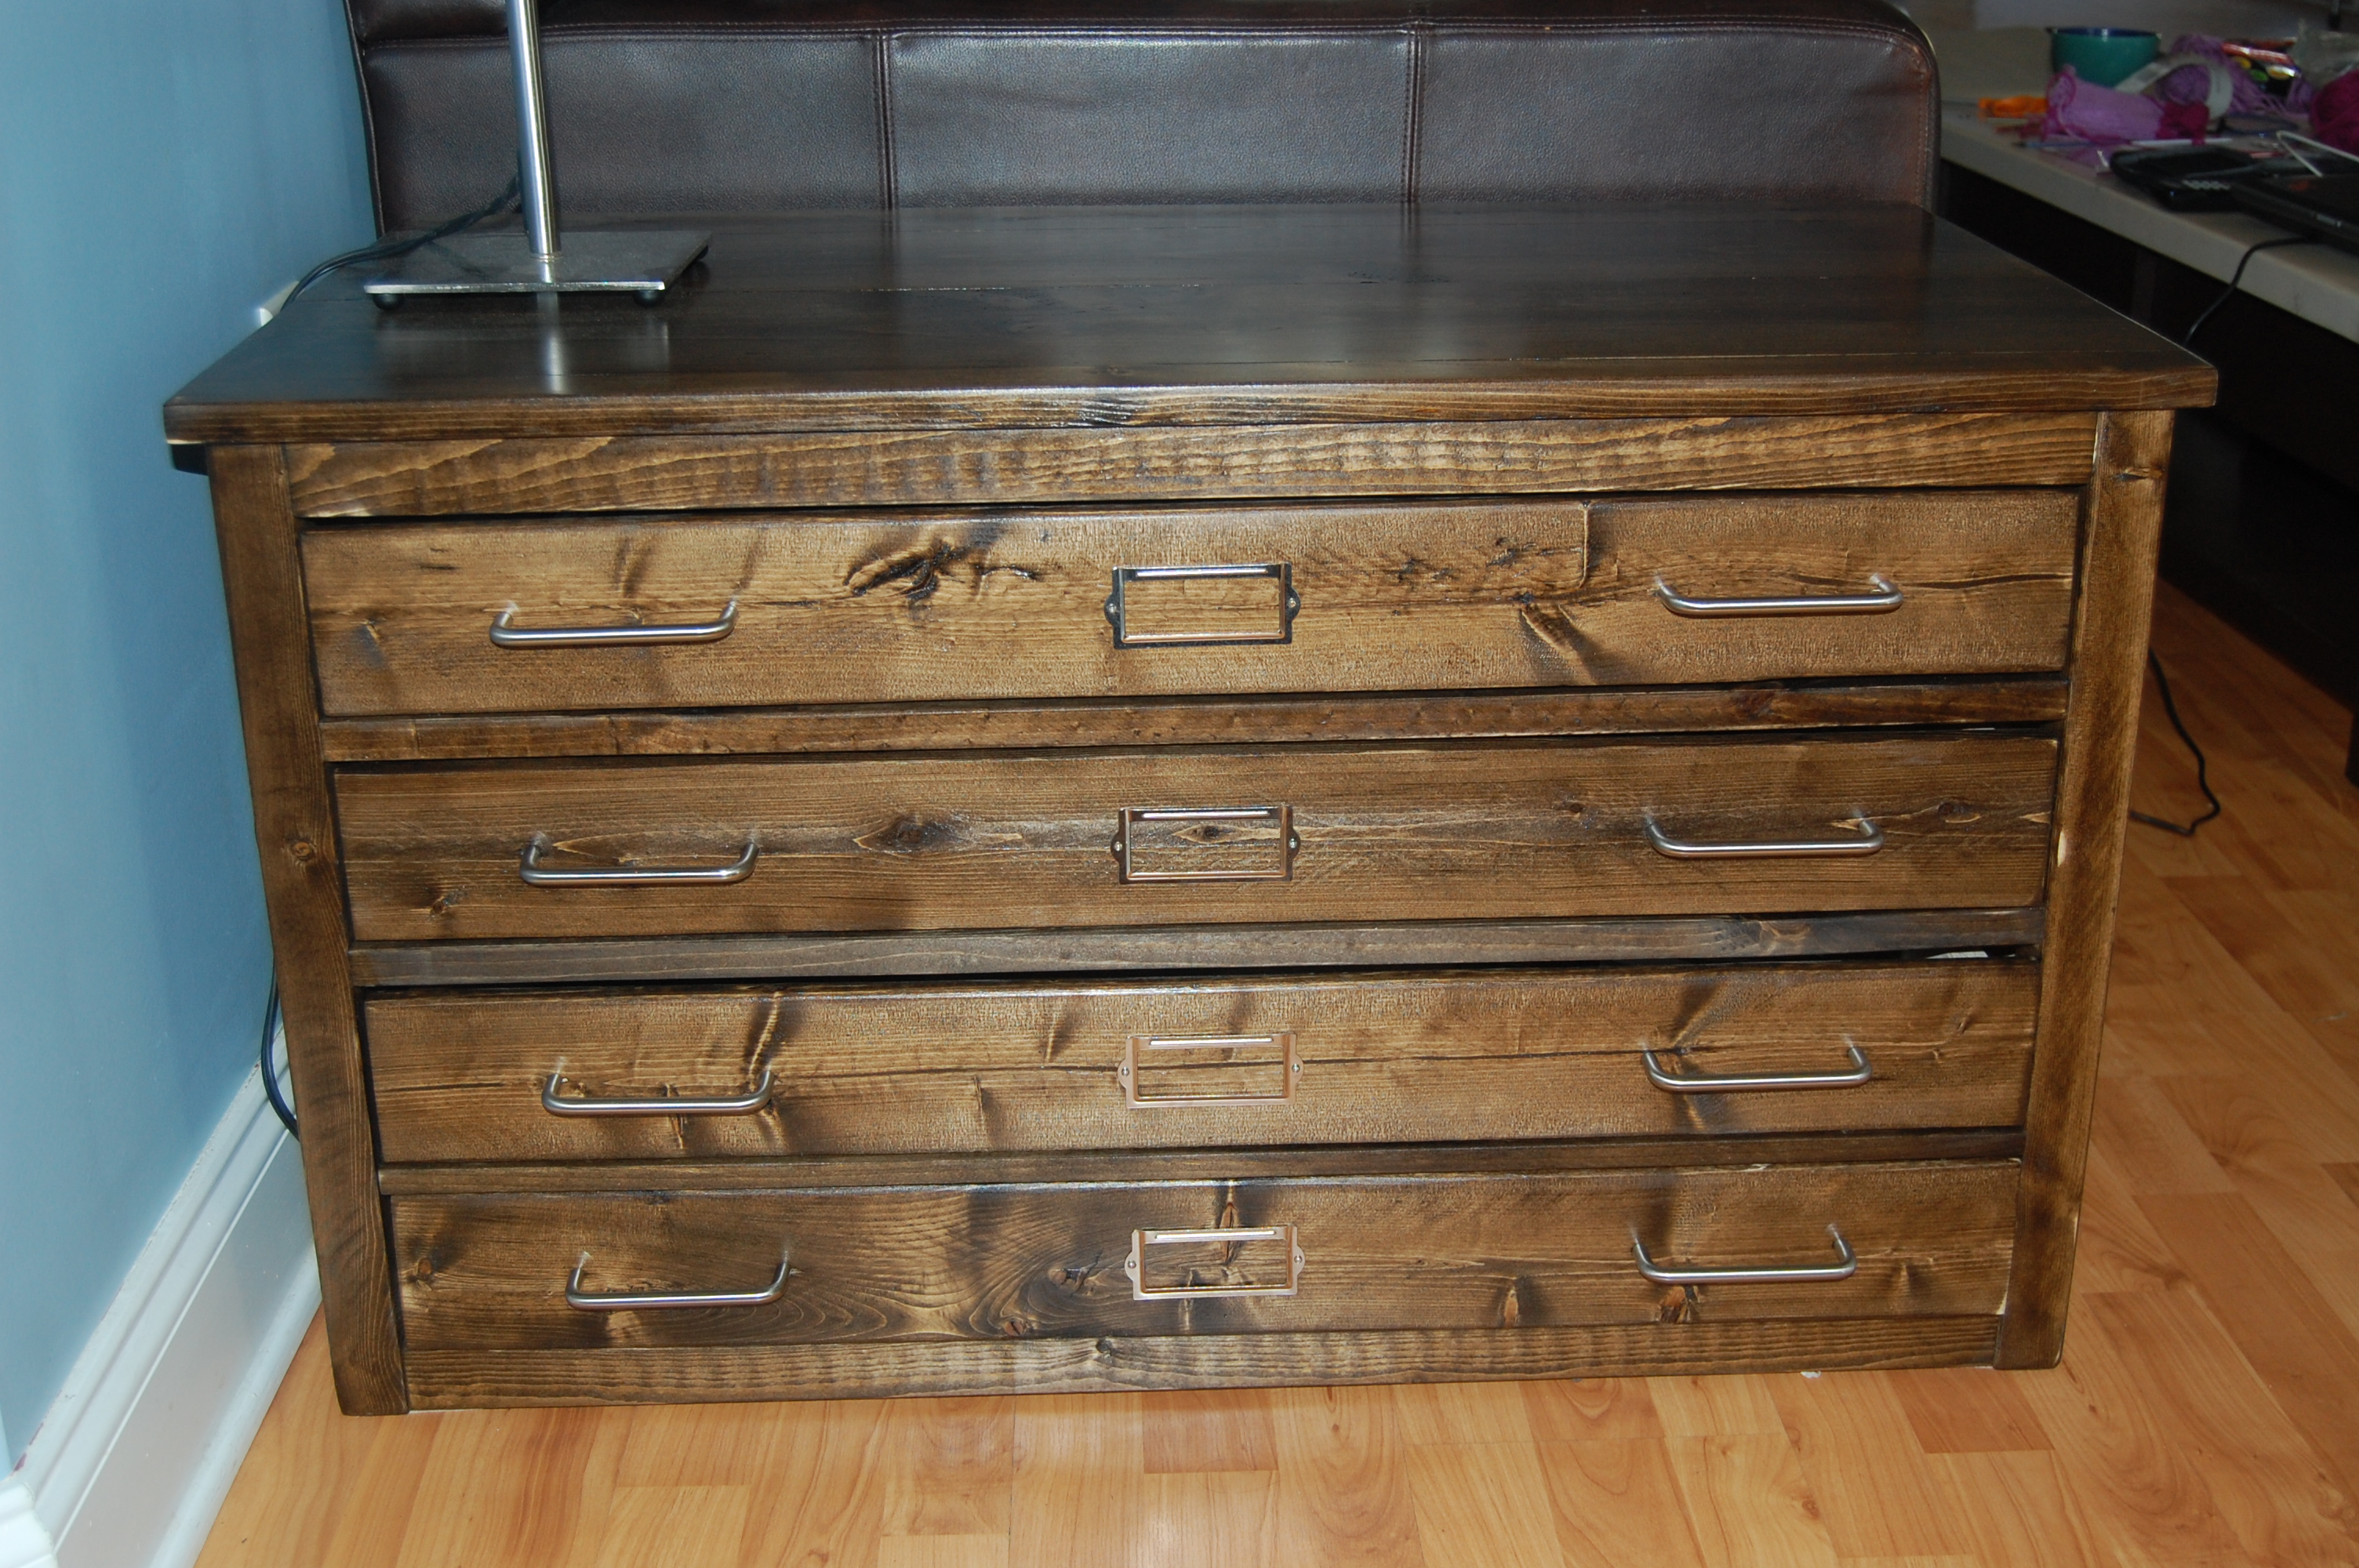 s map drawers price to furniture cap includes used for drafting holds total flat up hopper this drawer new listings racks plan drawings list x roll usedflat and base files